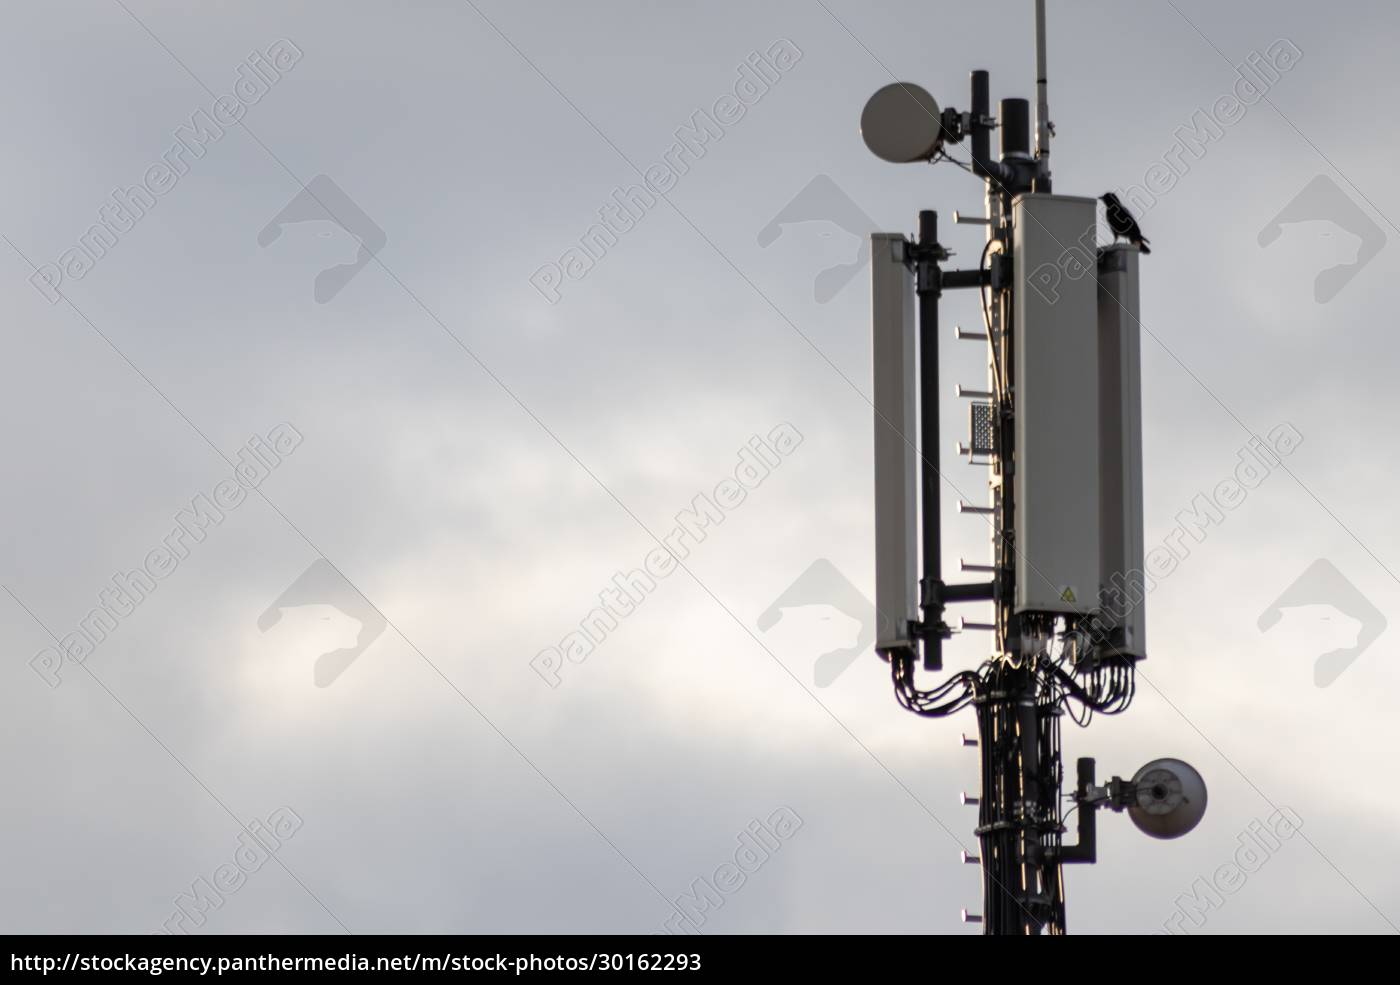 mobile, infrastructure, antenna, for, best, connection - 30162293